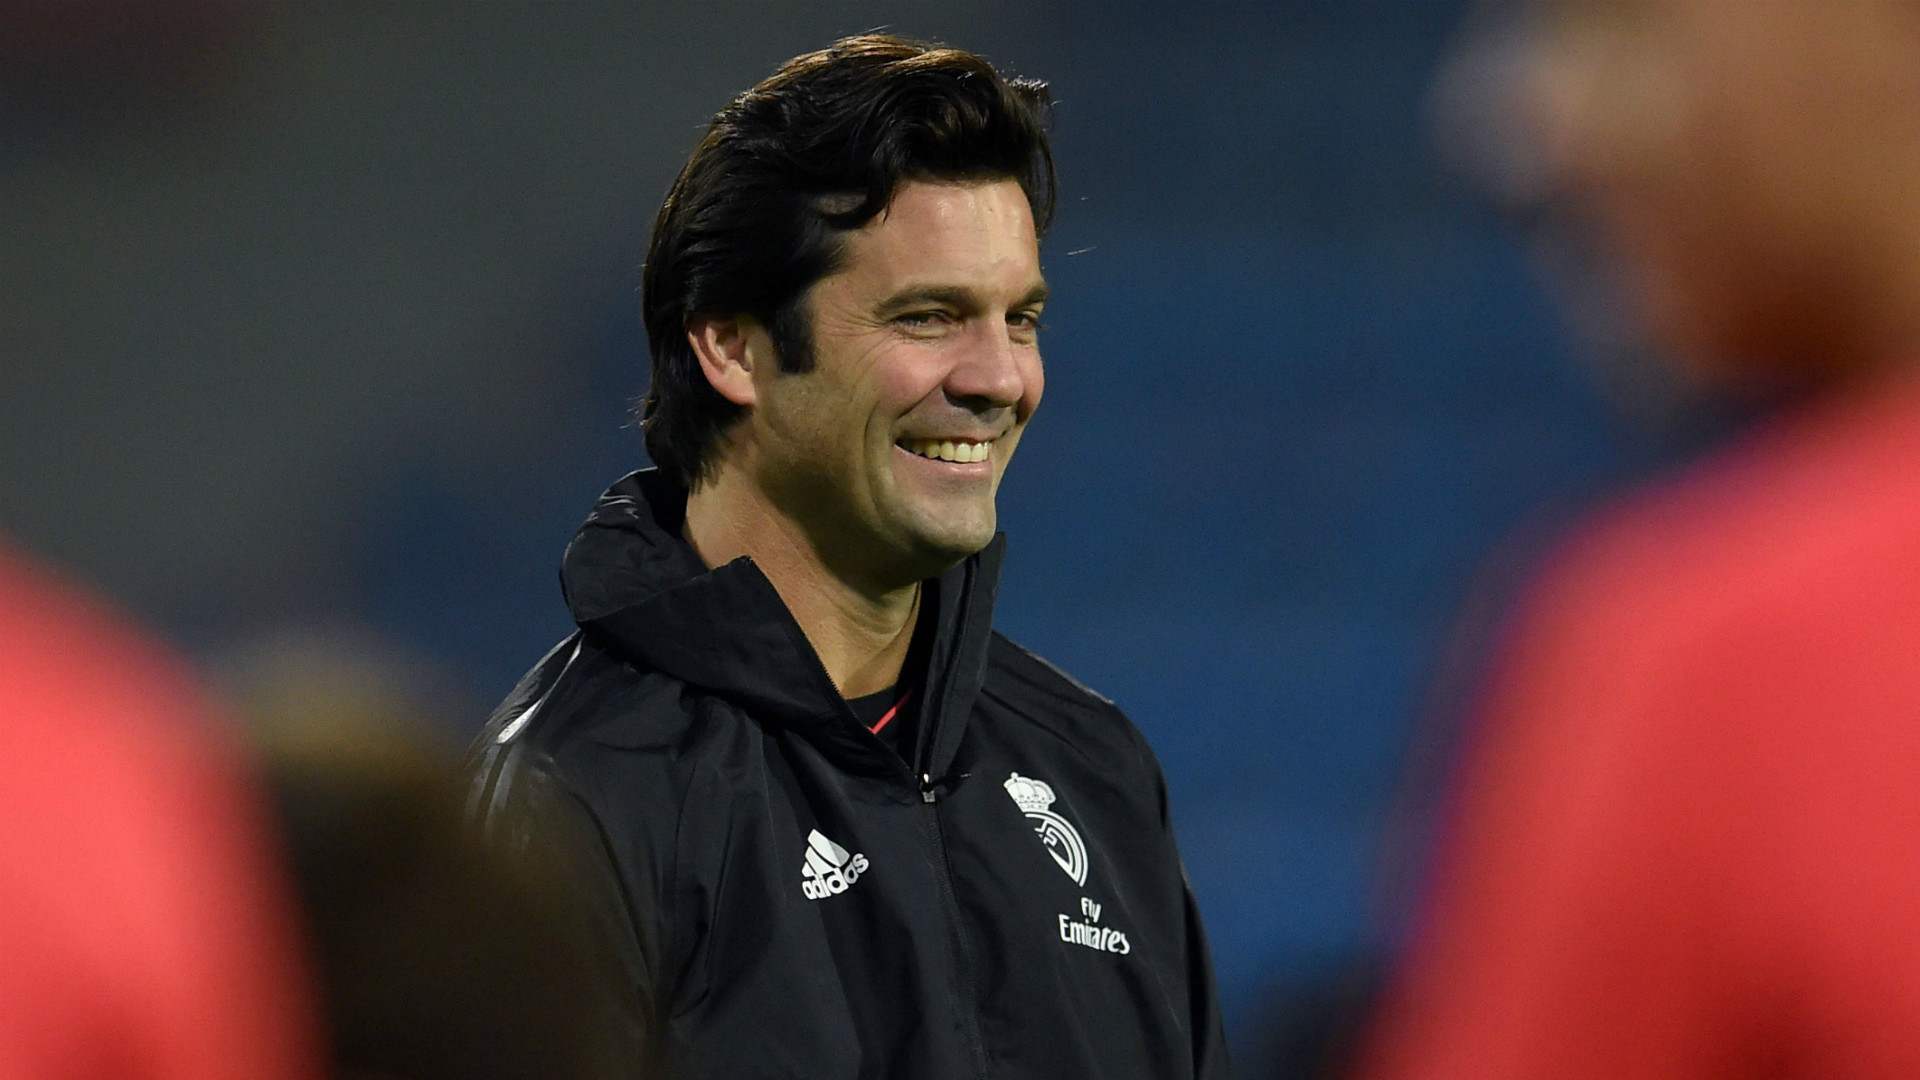 Real Madrid appoint Solari on permanent basis